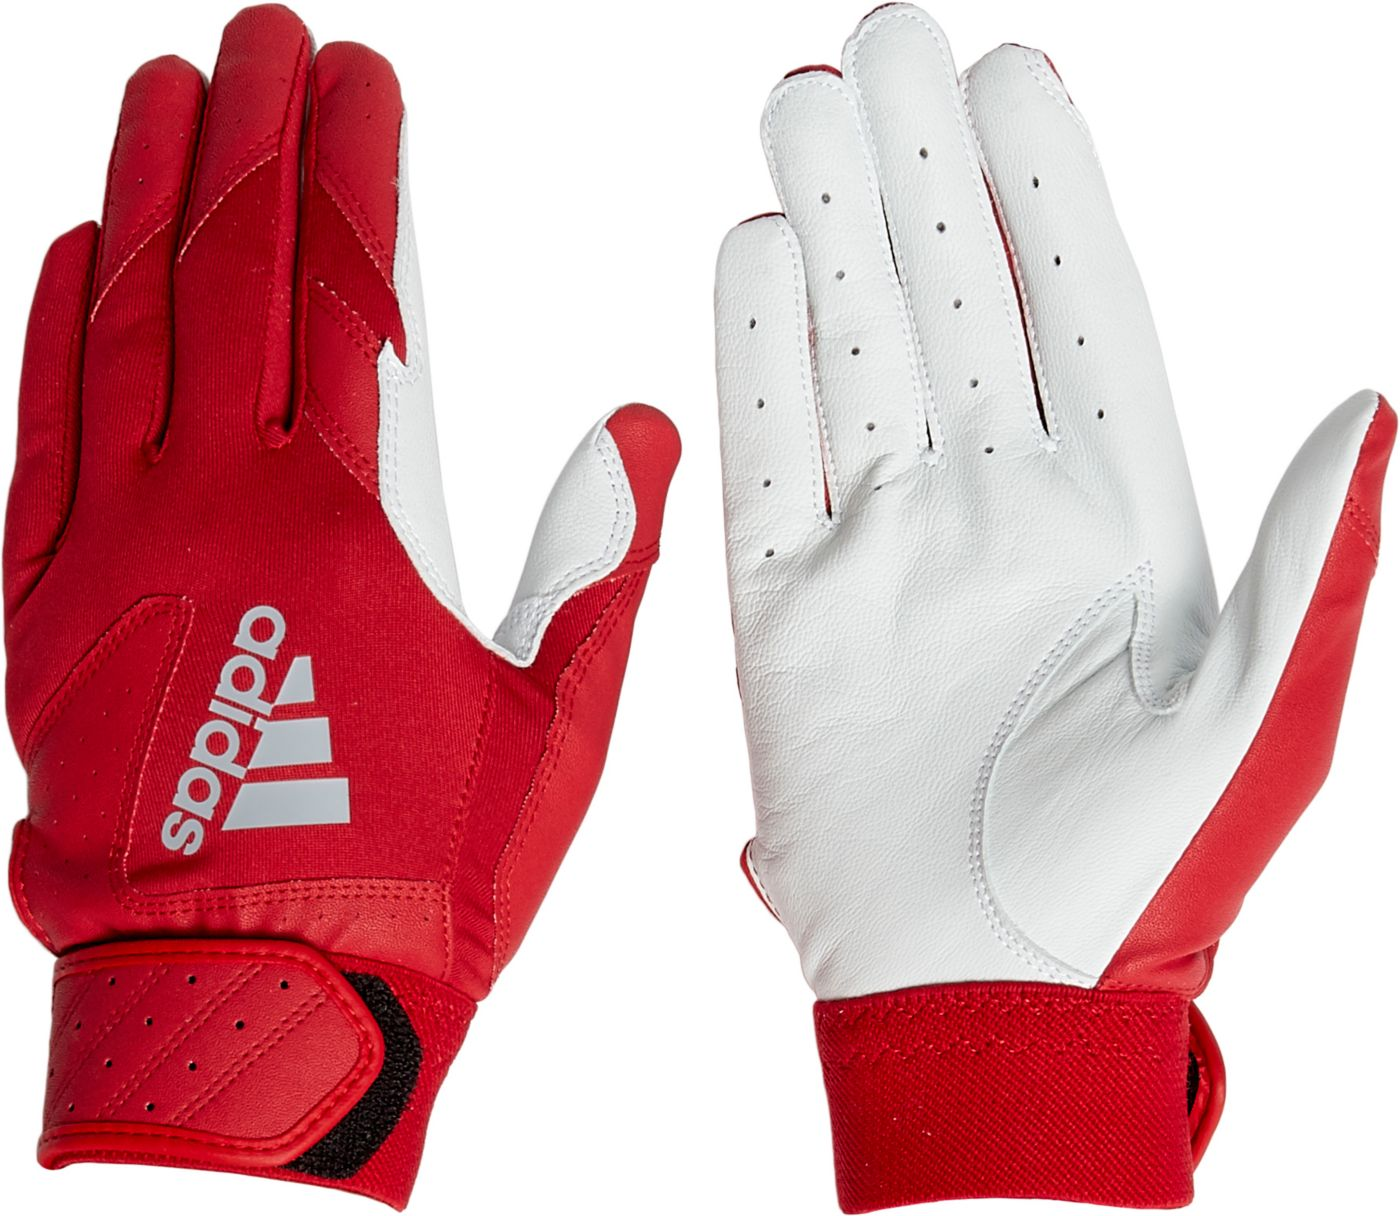 adidas Youth Trilogy Batting Gloves 2019